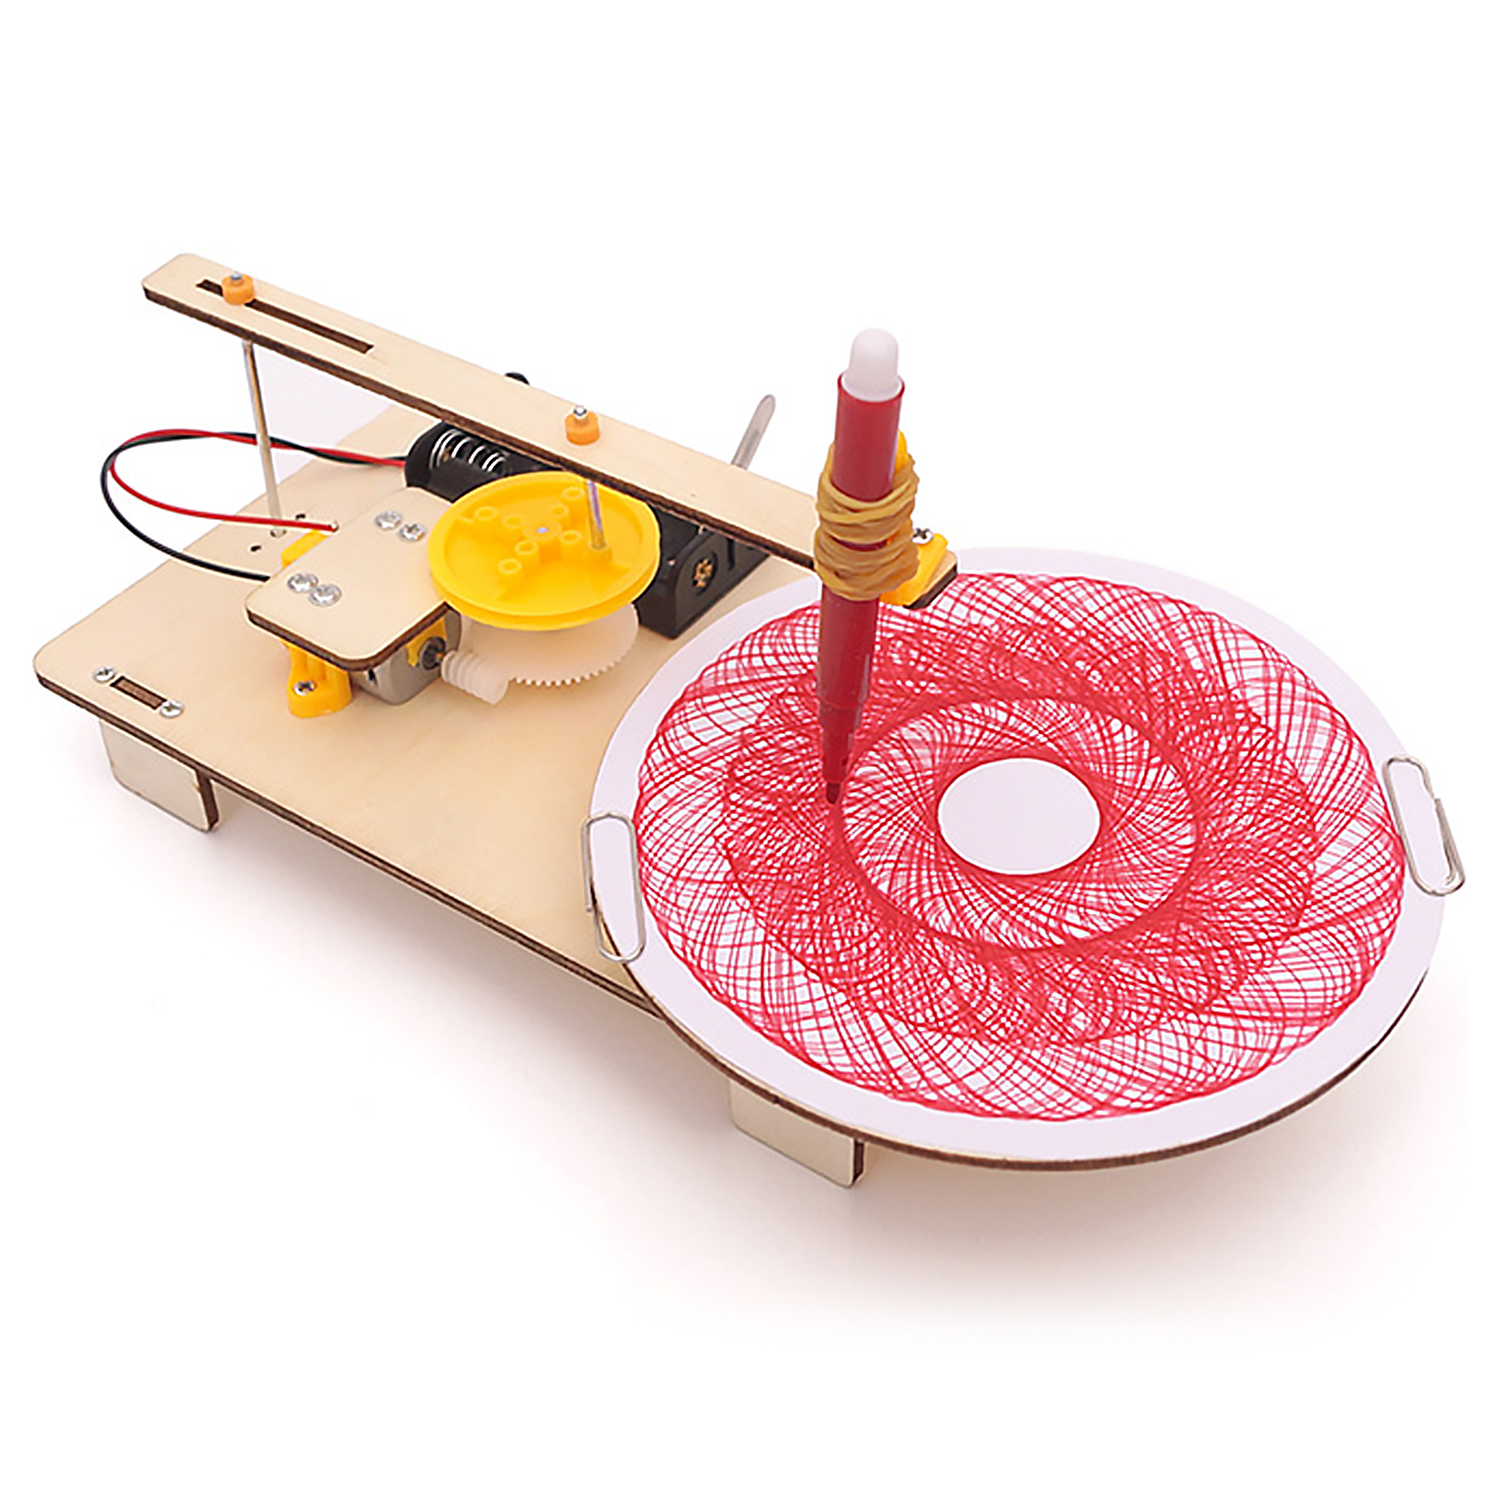 Kids Wooden DIY Assembled Electric Plotter Model Kit Creative Drawing Robot Physics Scientific Experiment Educational Toy